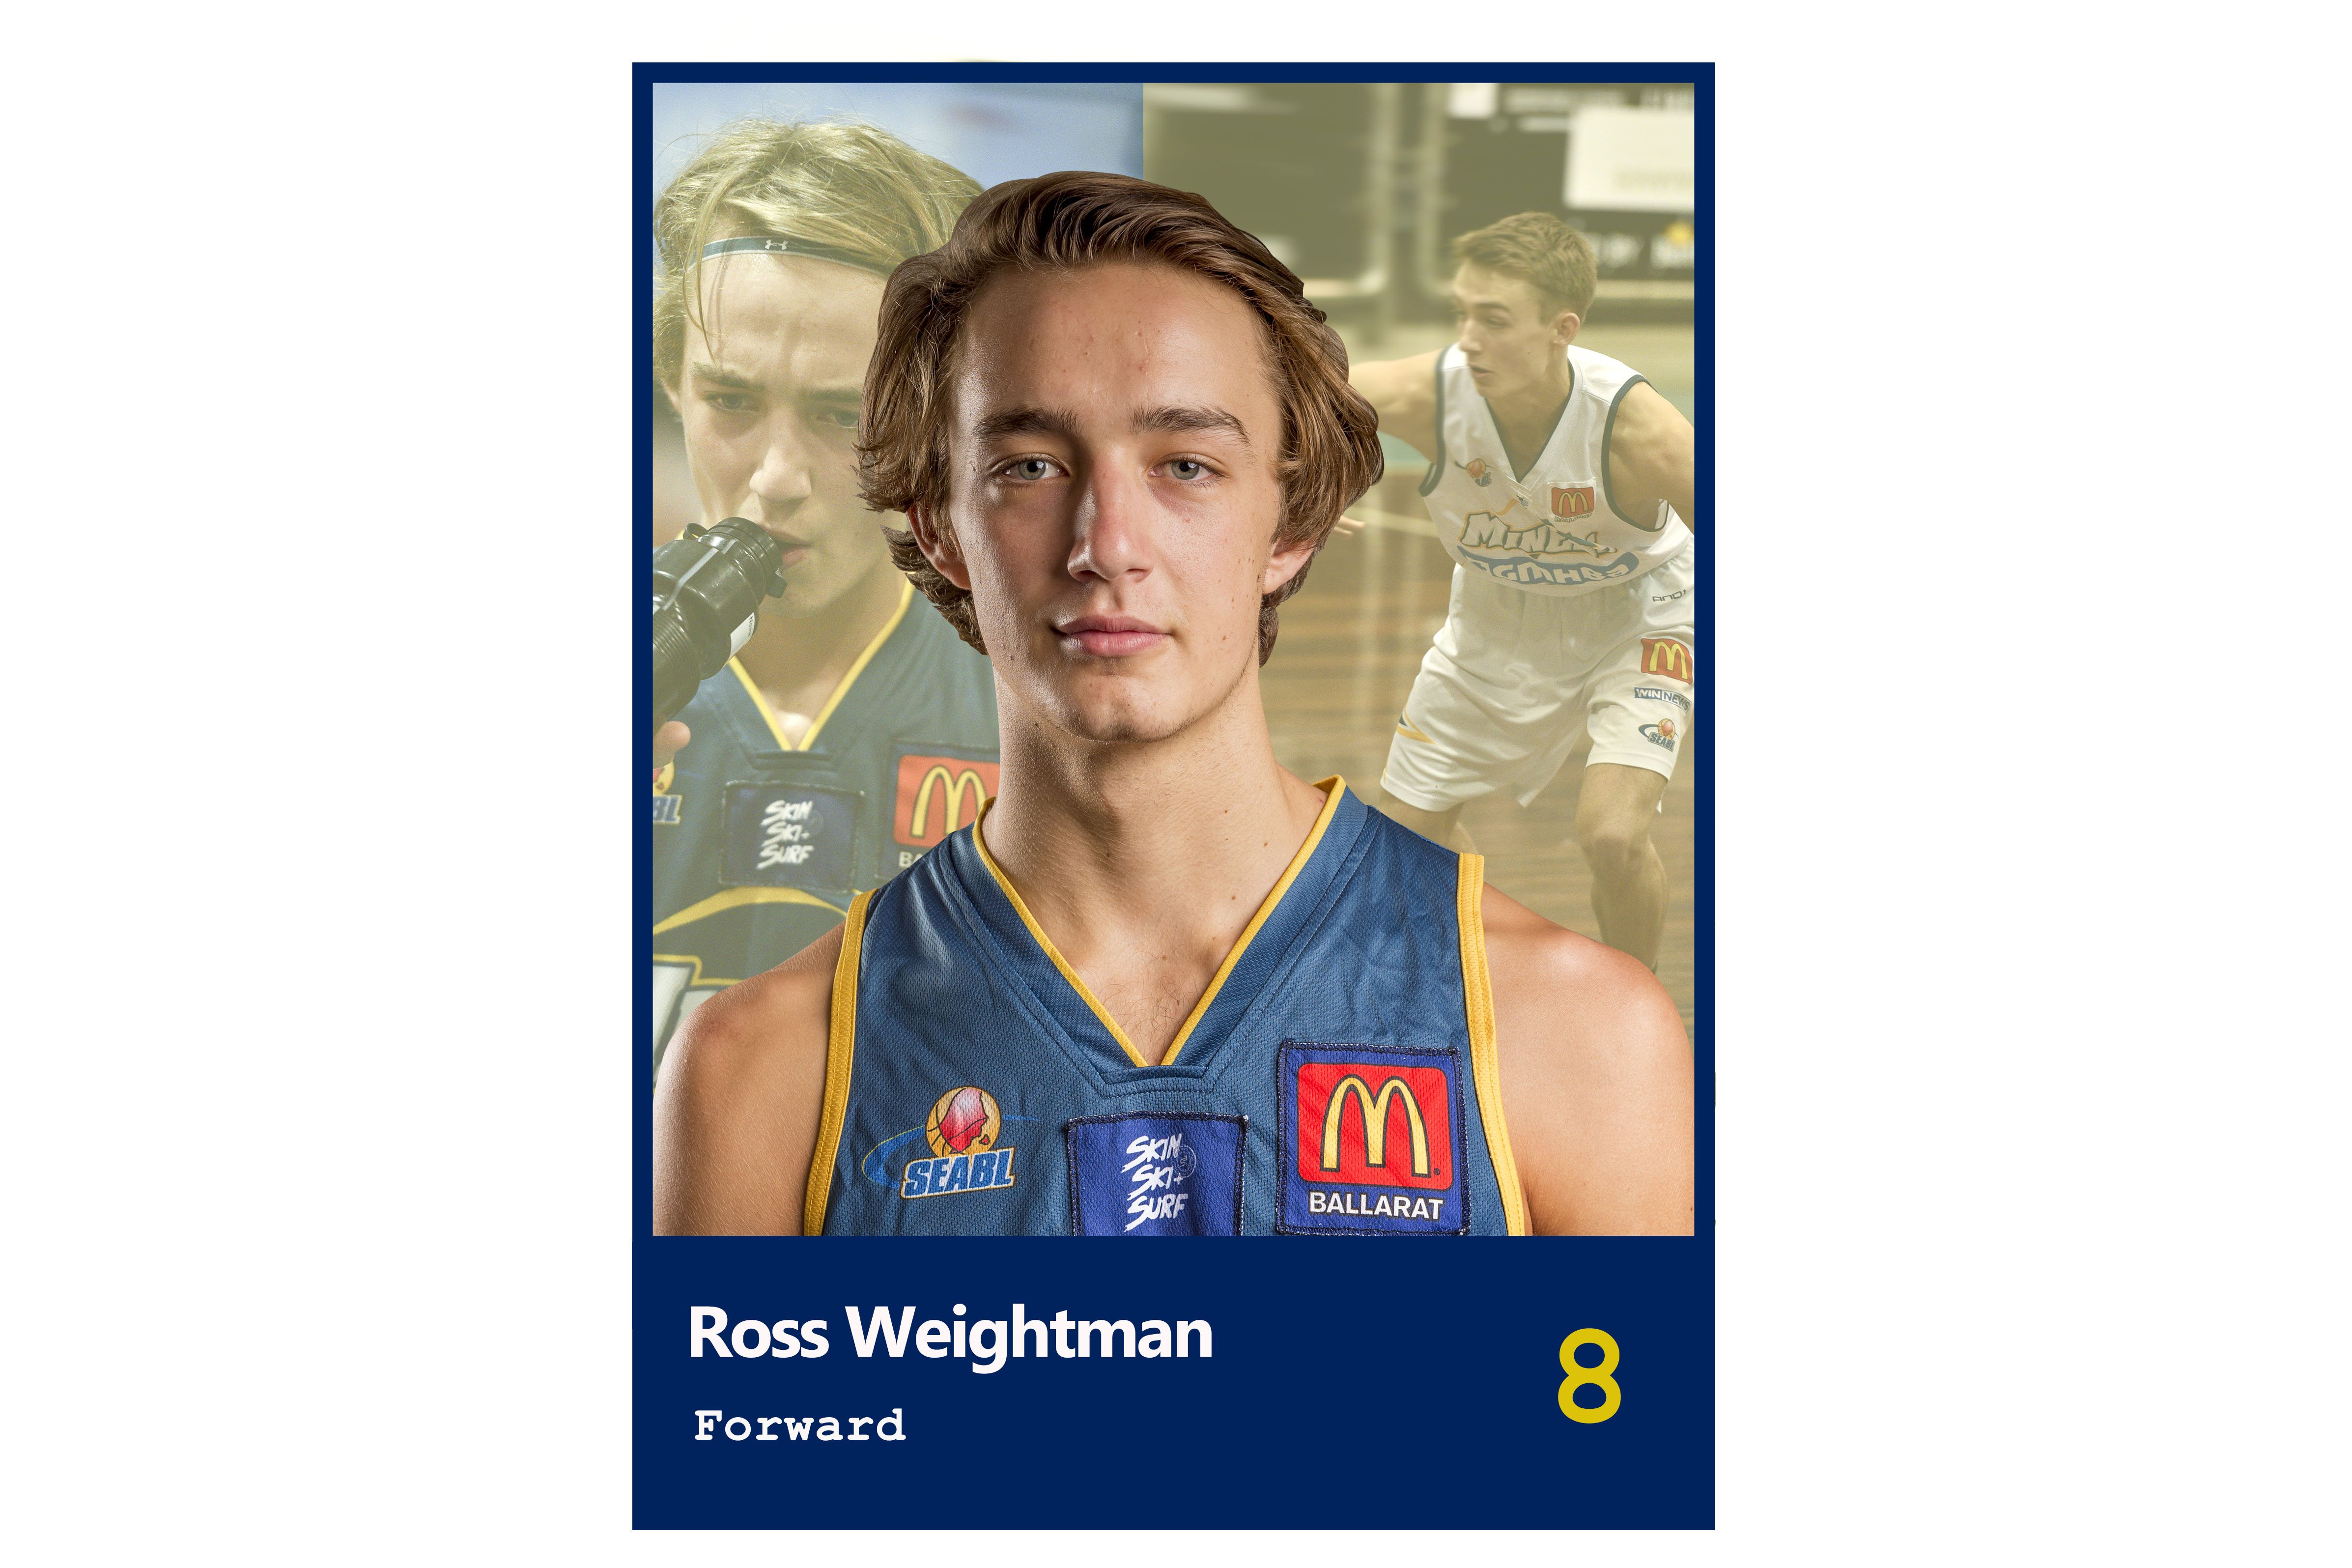 Ross Weightman